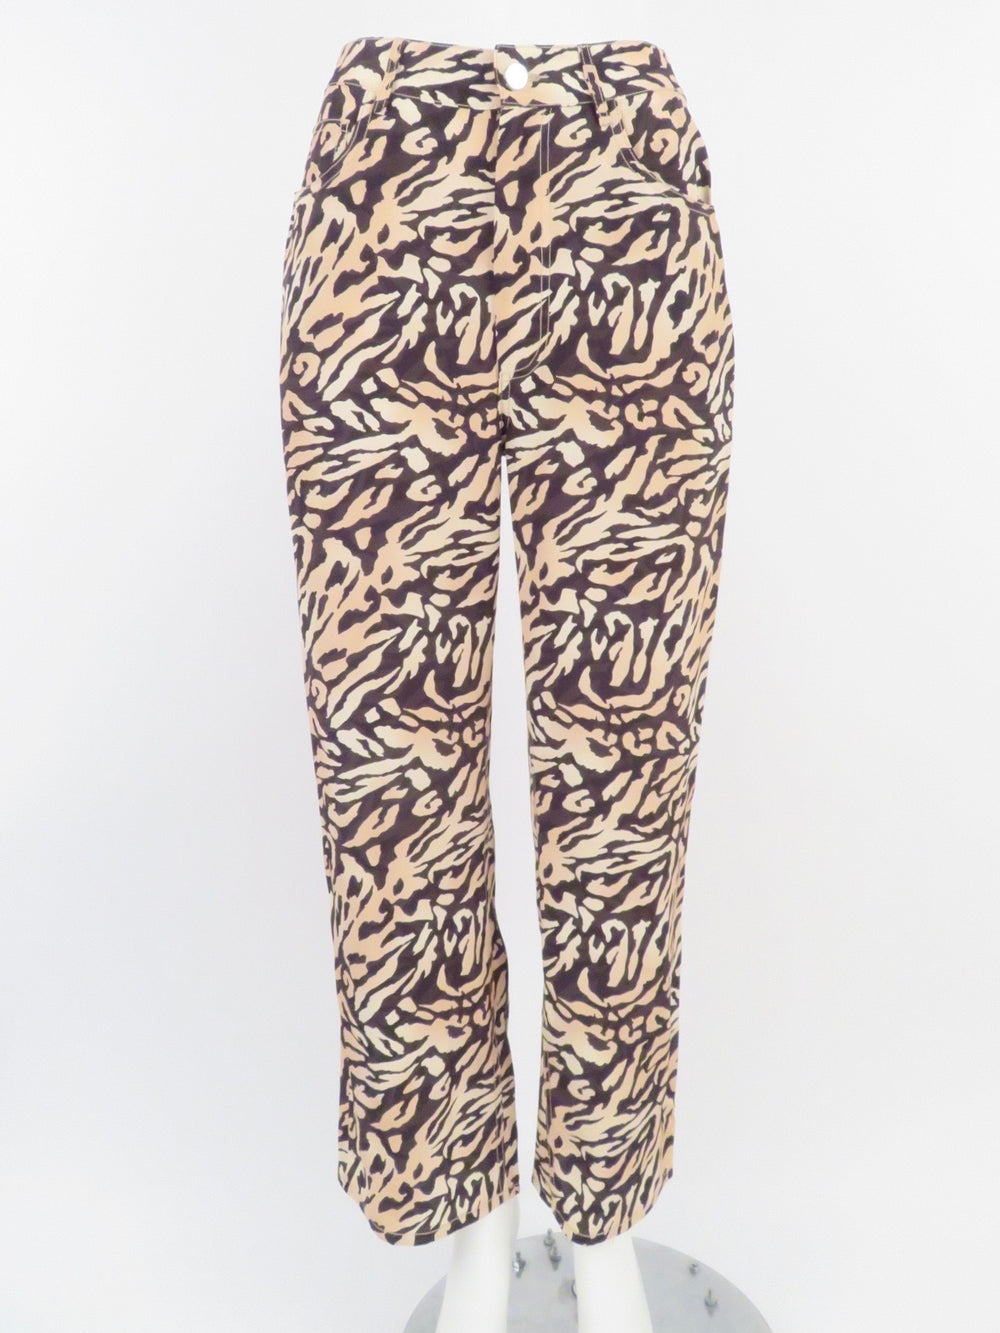 fleur du mal tiger print high waist pants. featuring pockets at sides and back, and front zip and buttoned closure. original tags attached.